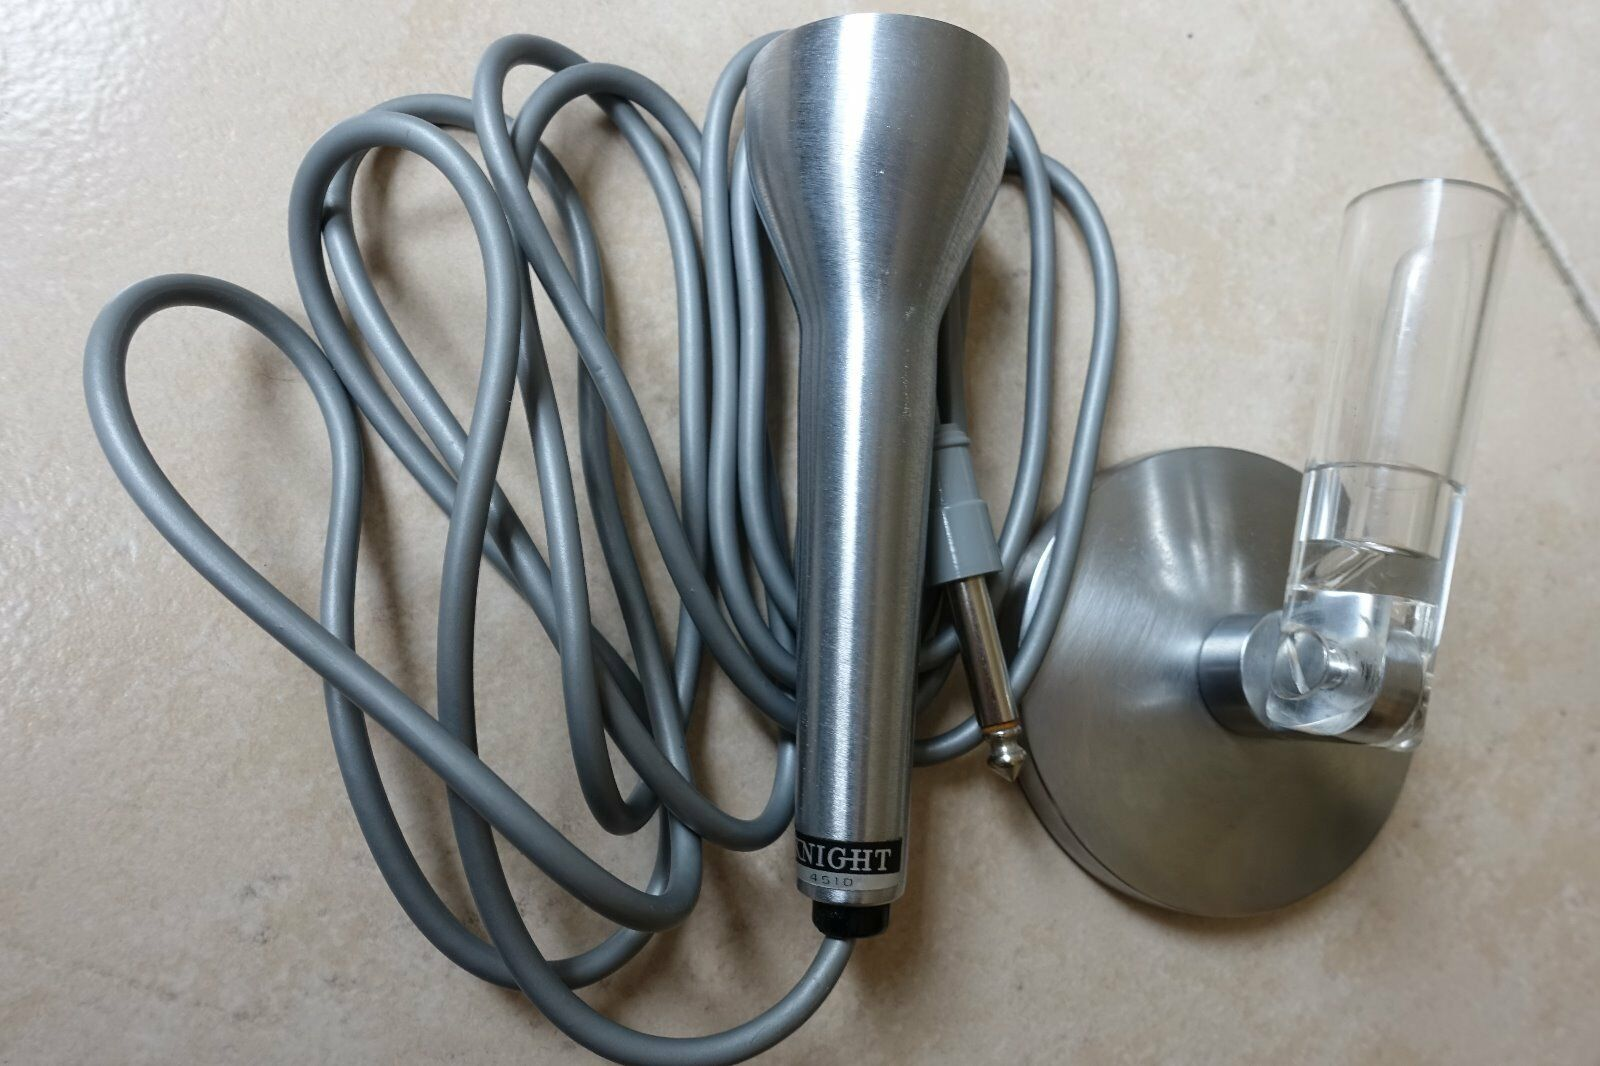 Microphone knight 5410 avec support vintage